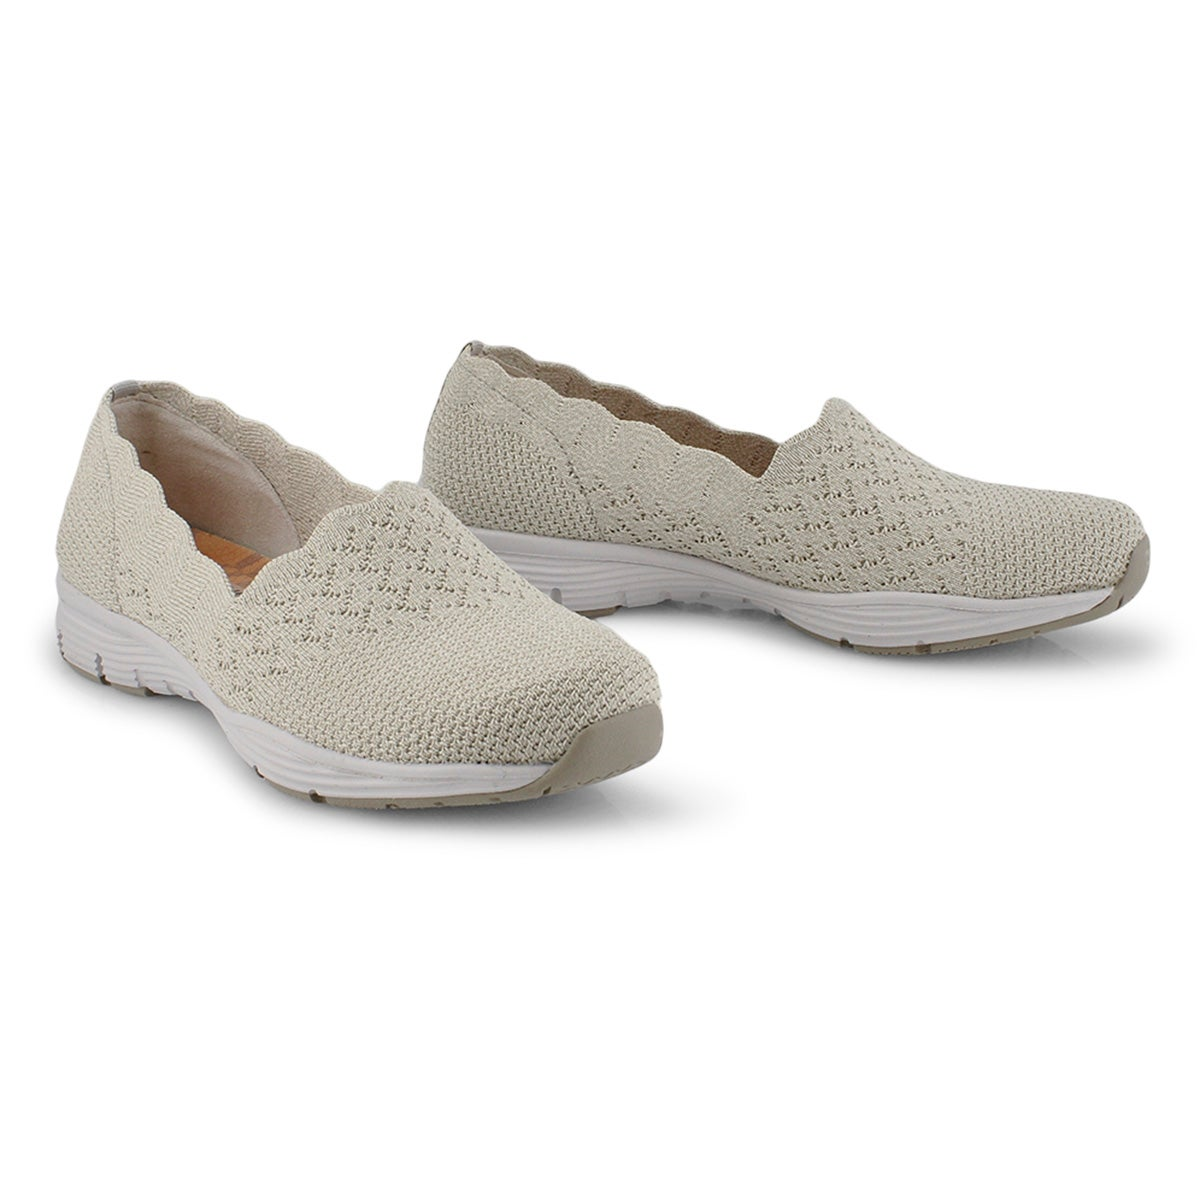 Lds Seager Stat natural slip on shoe